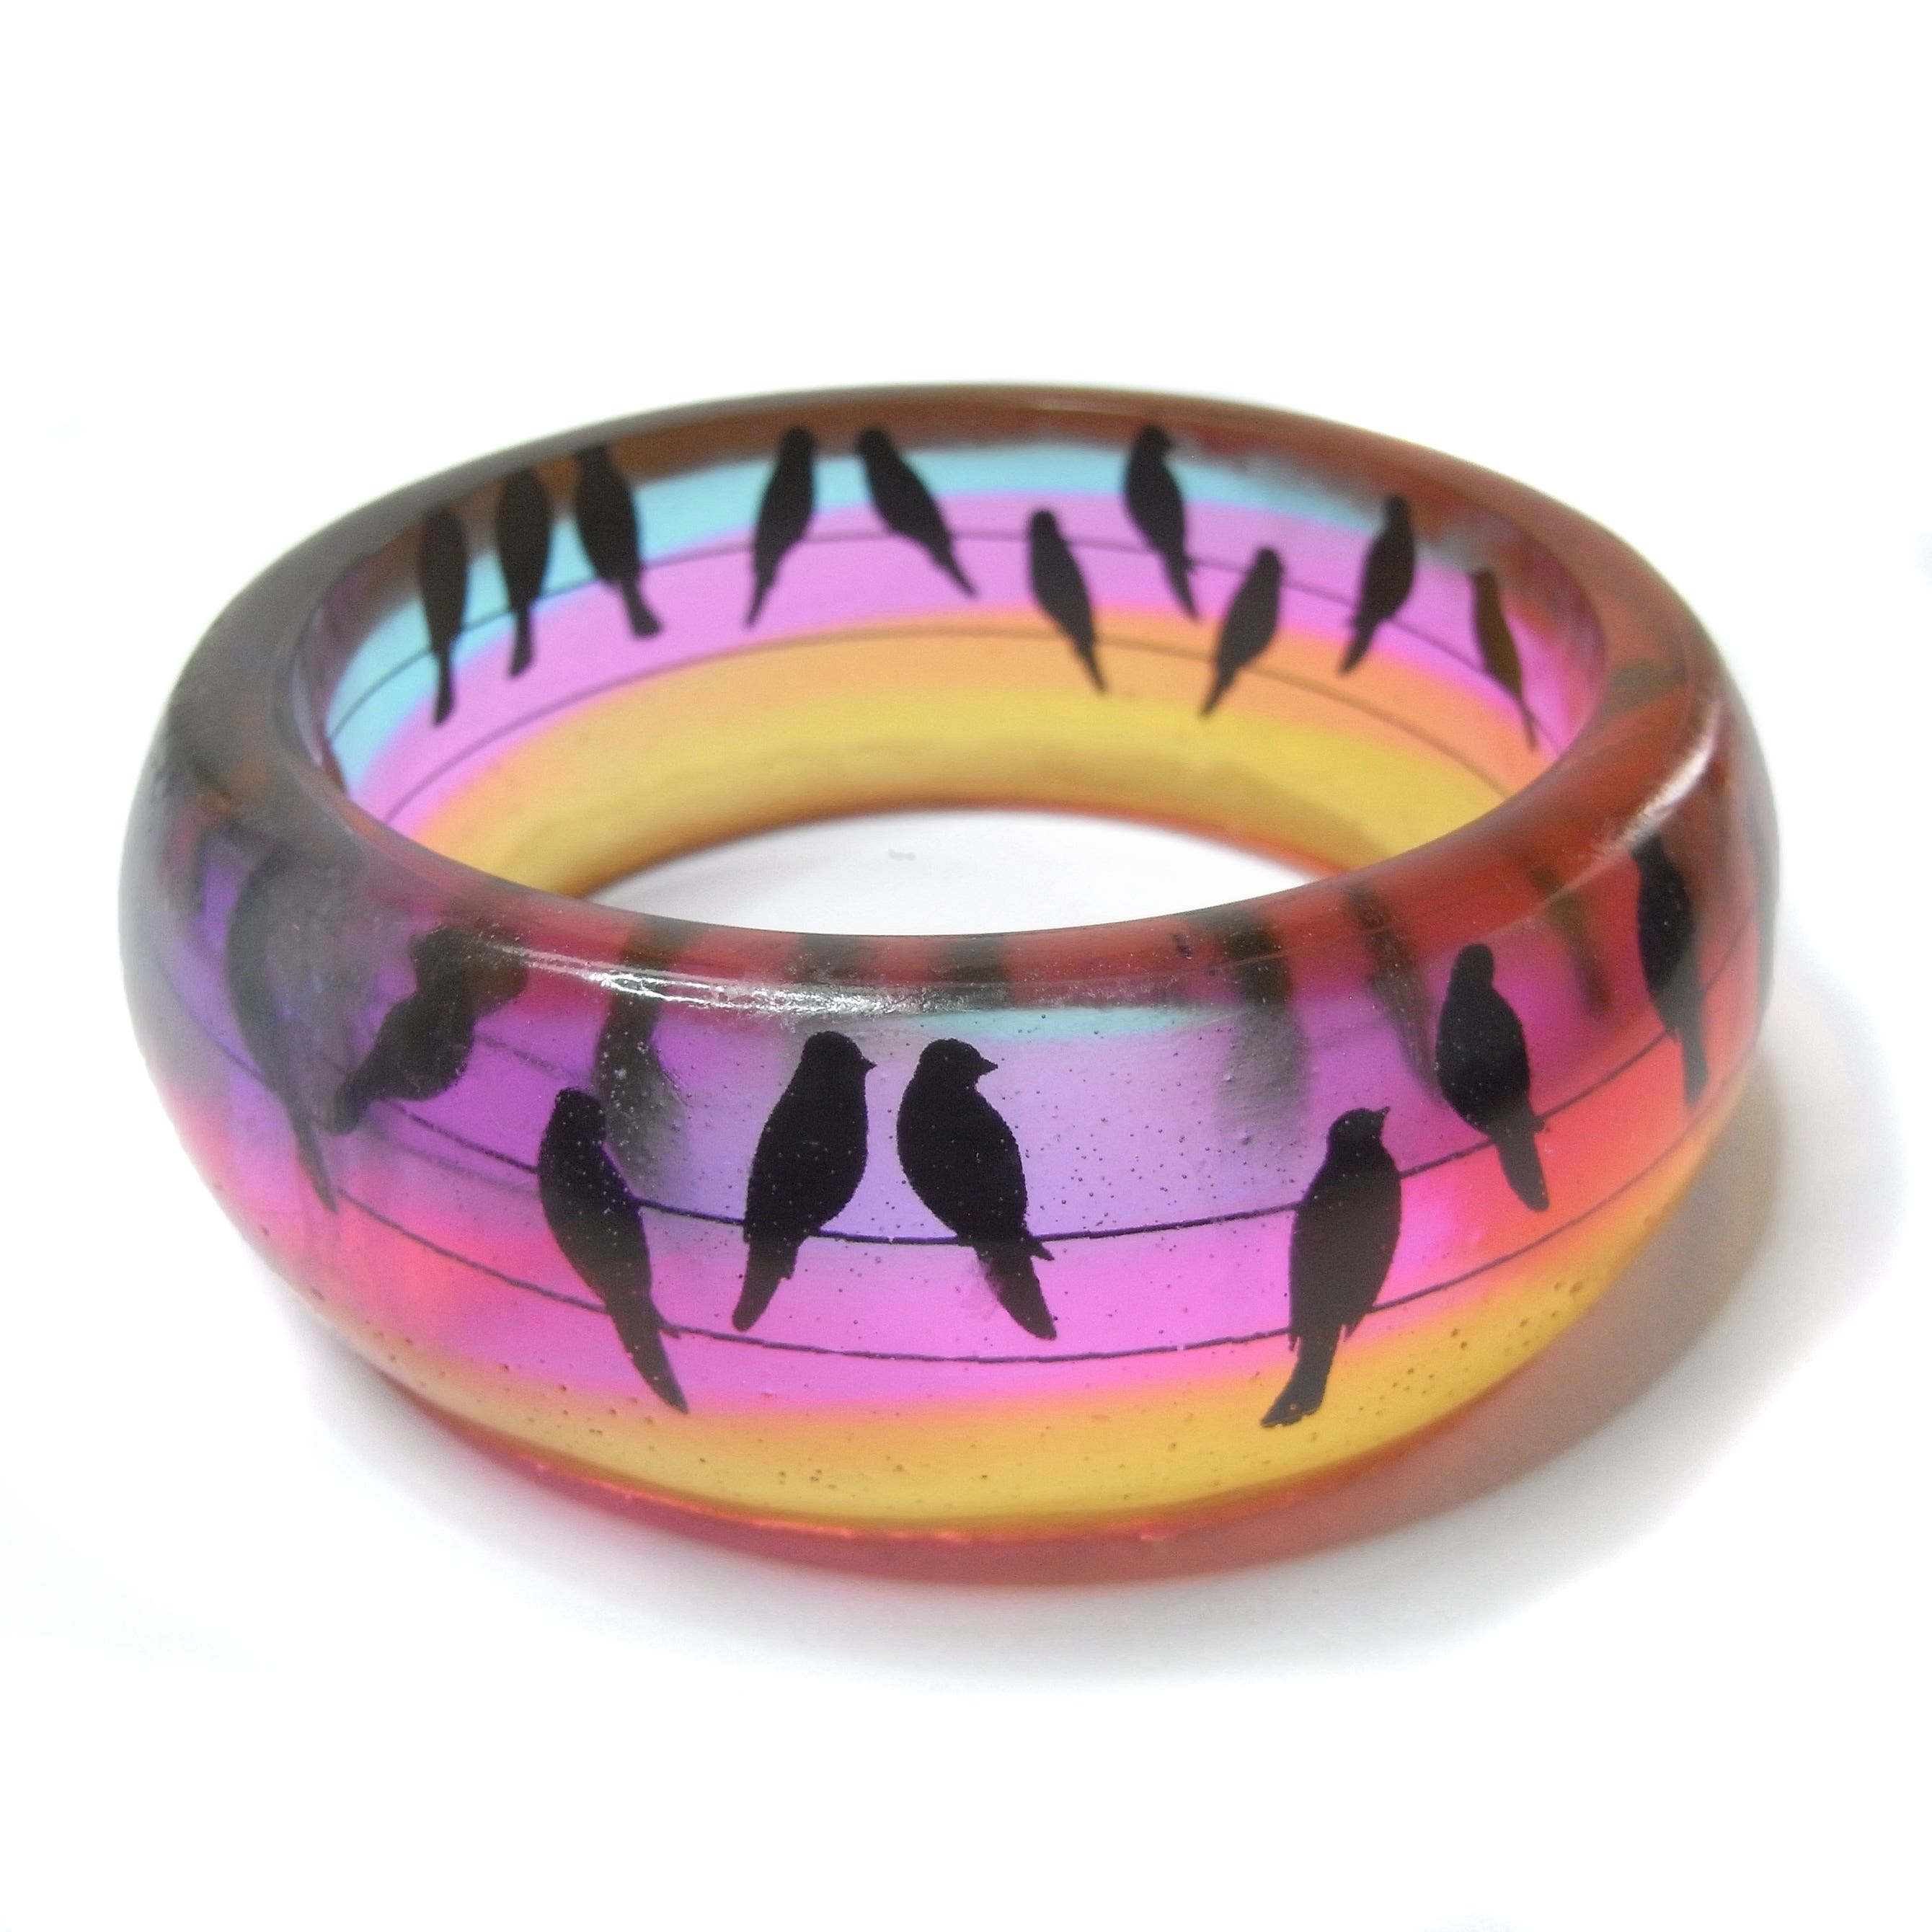 Resin Bangle with silhouette birds on a wire against a sunset sky of orange, pink, purple and blue